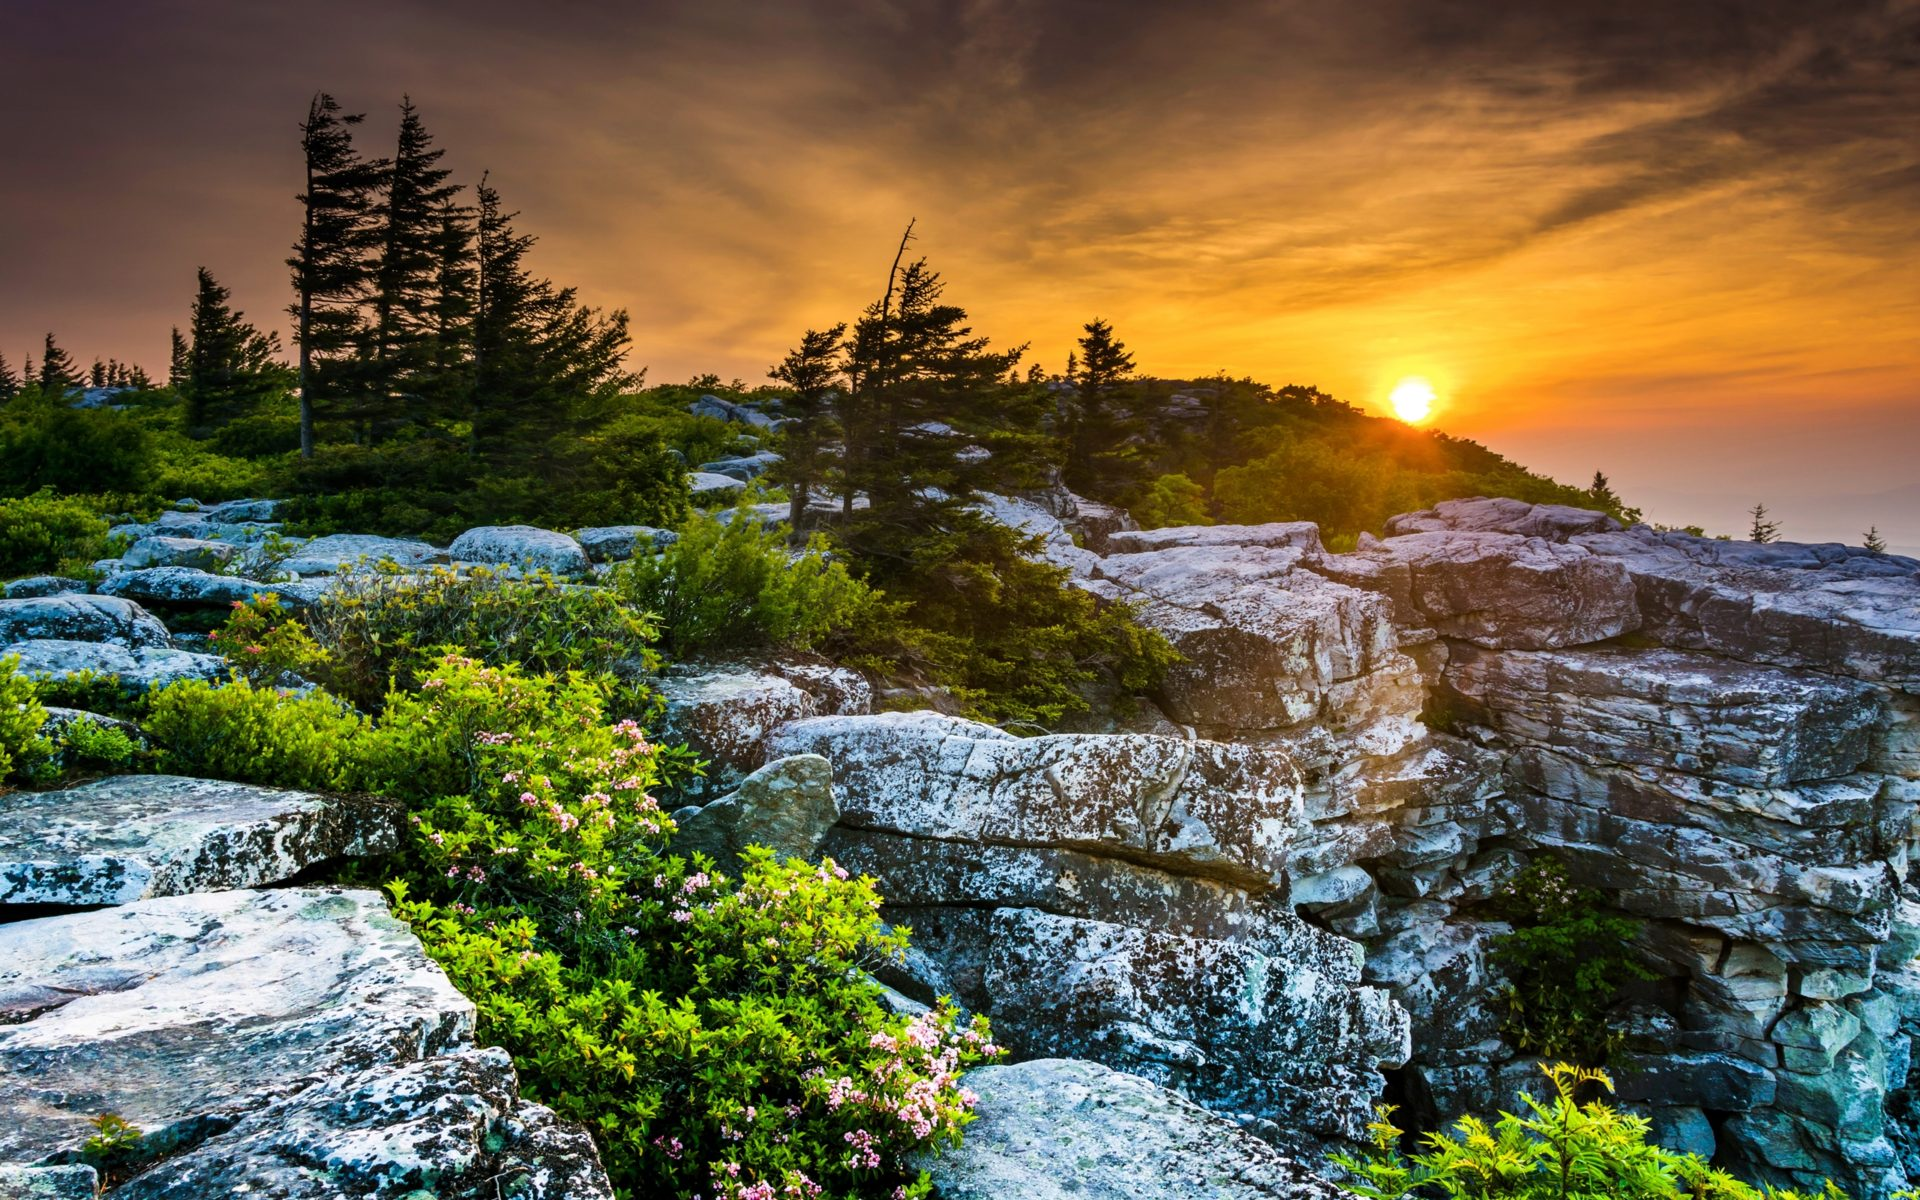 Cars Wallpaper Gif Scenery Usa Sunrises And Sunsets Stones West Virginia Fir